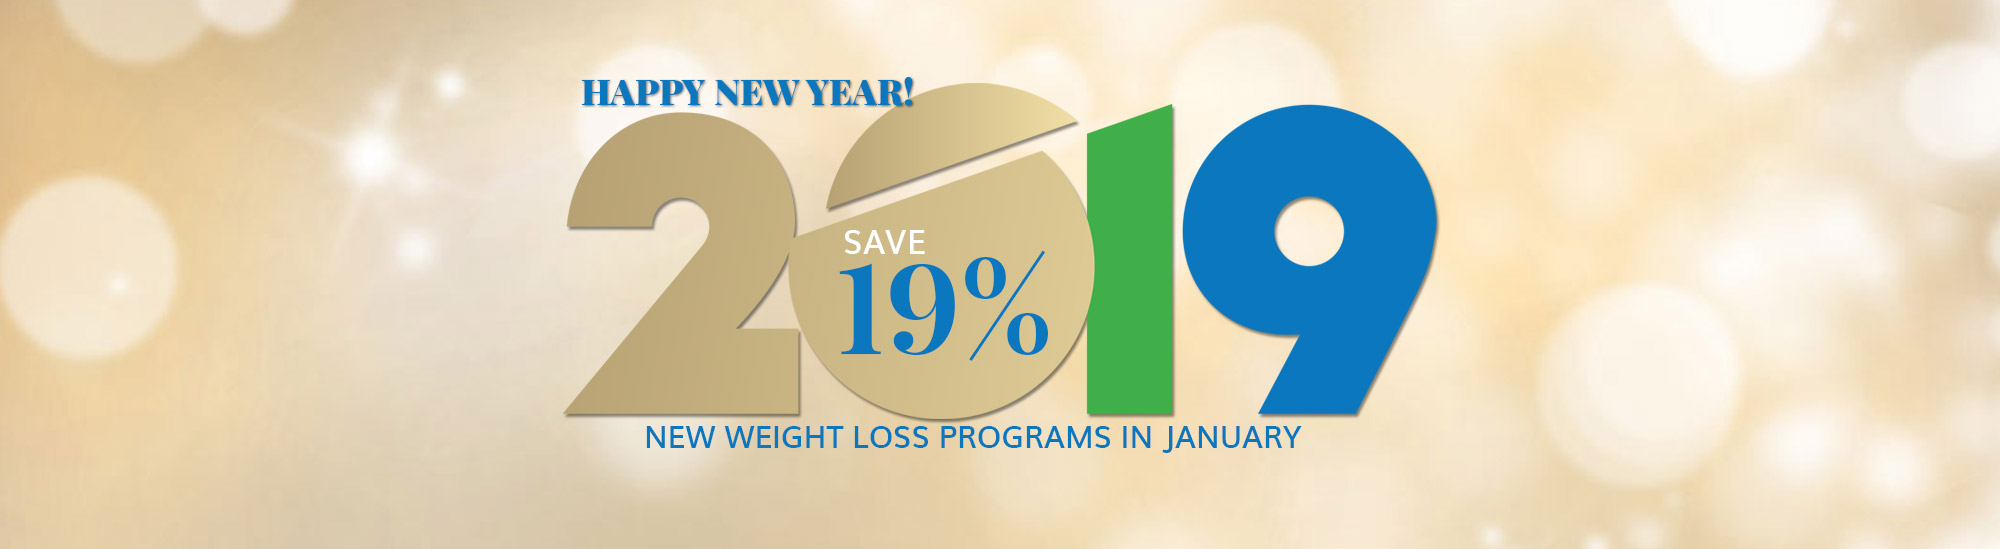 Call today to save 19% on New Weight Loss Programs in January 2019. Happy New Year at NuYou.